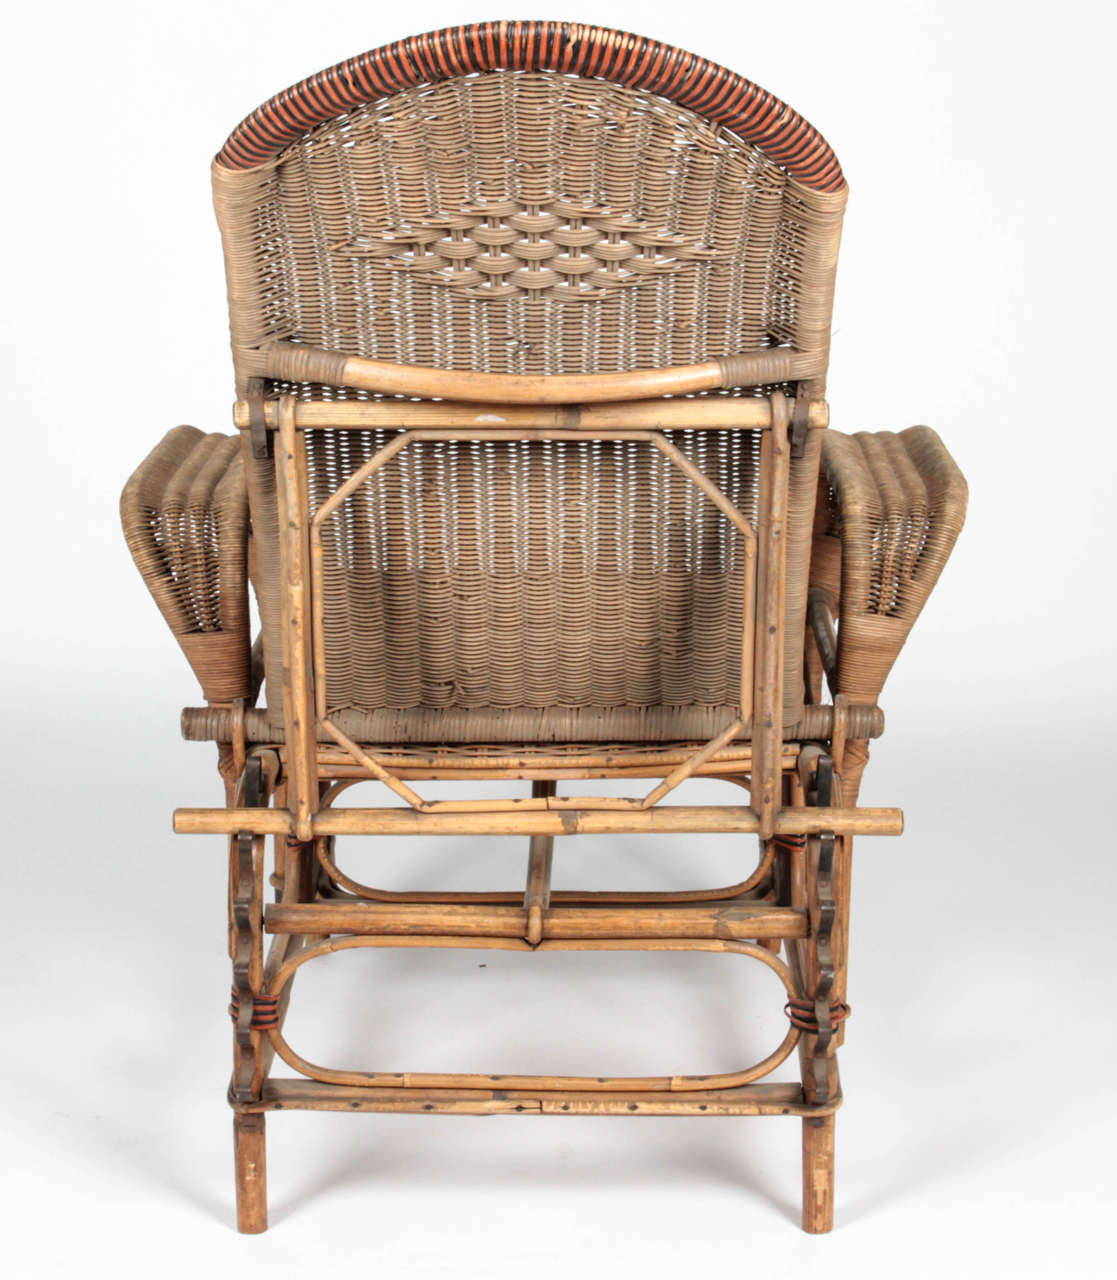 foot rests for chairs restoration hardware metal chair art deco reclining wicker lounge with detachable